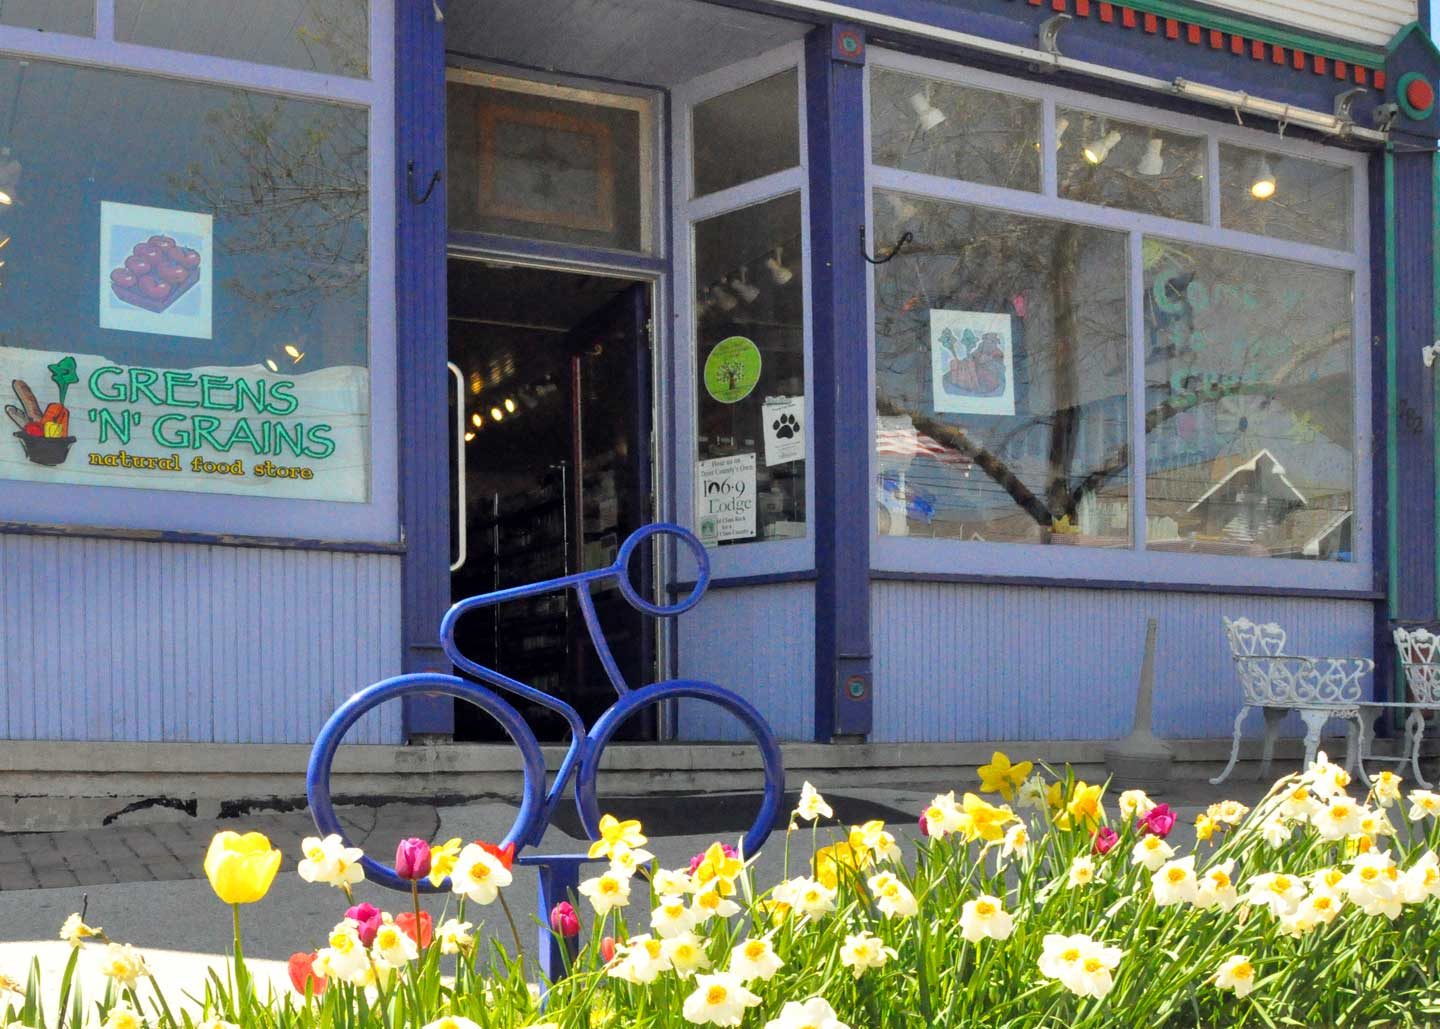 Greens N Grains Natural Foods in Door County